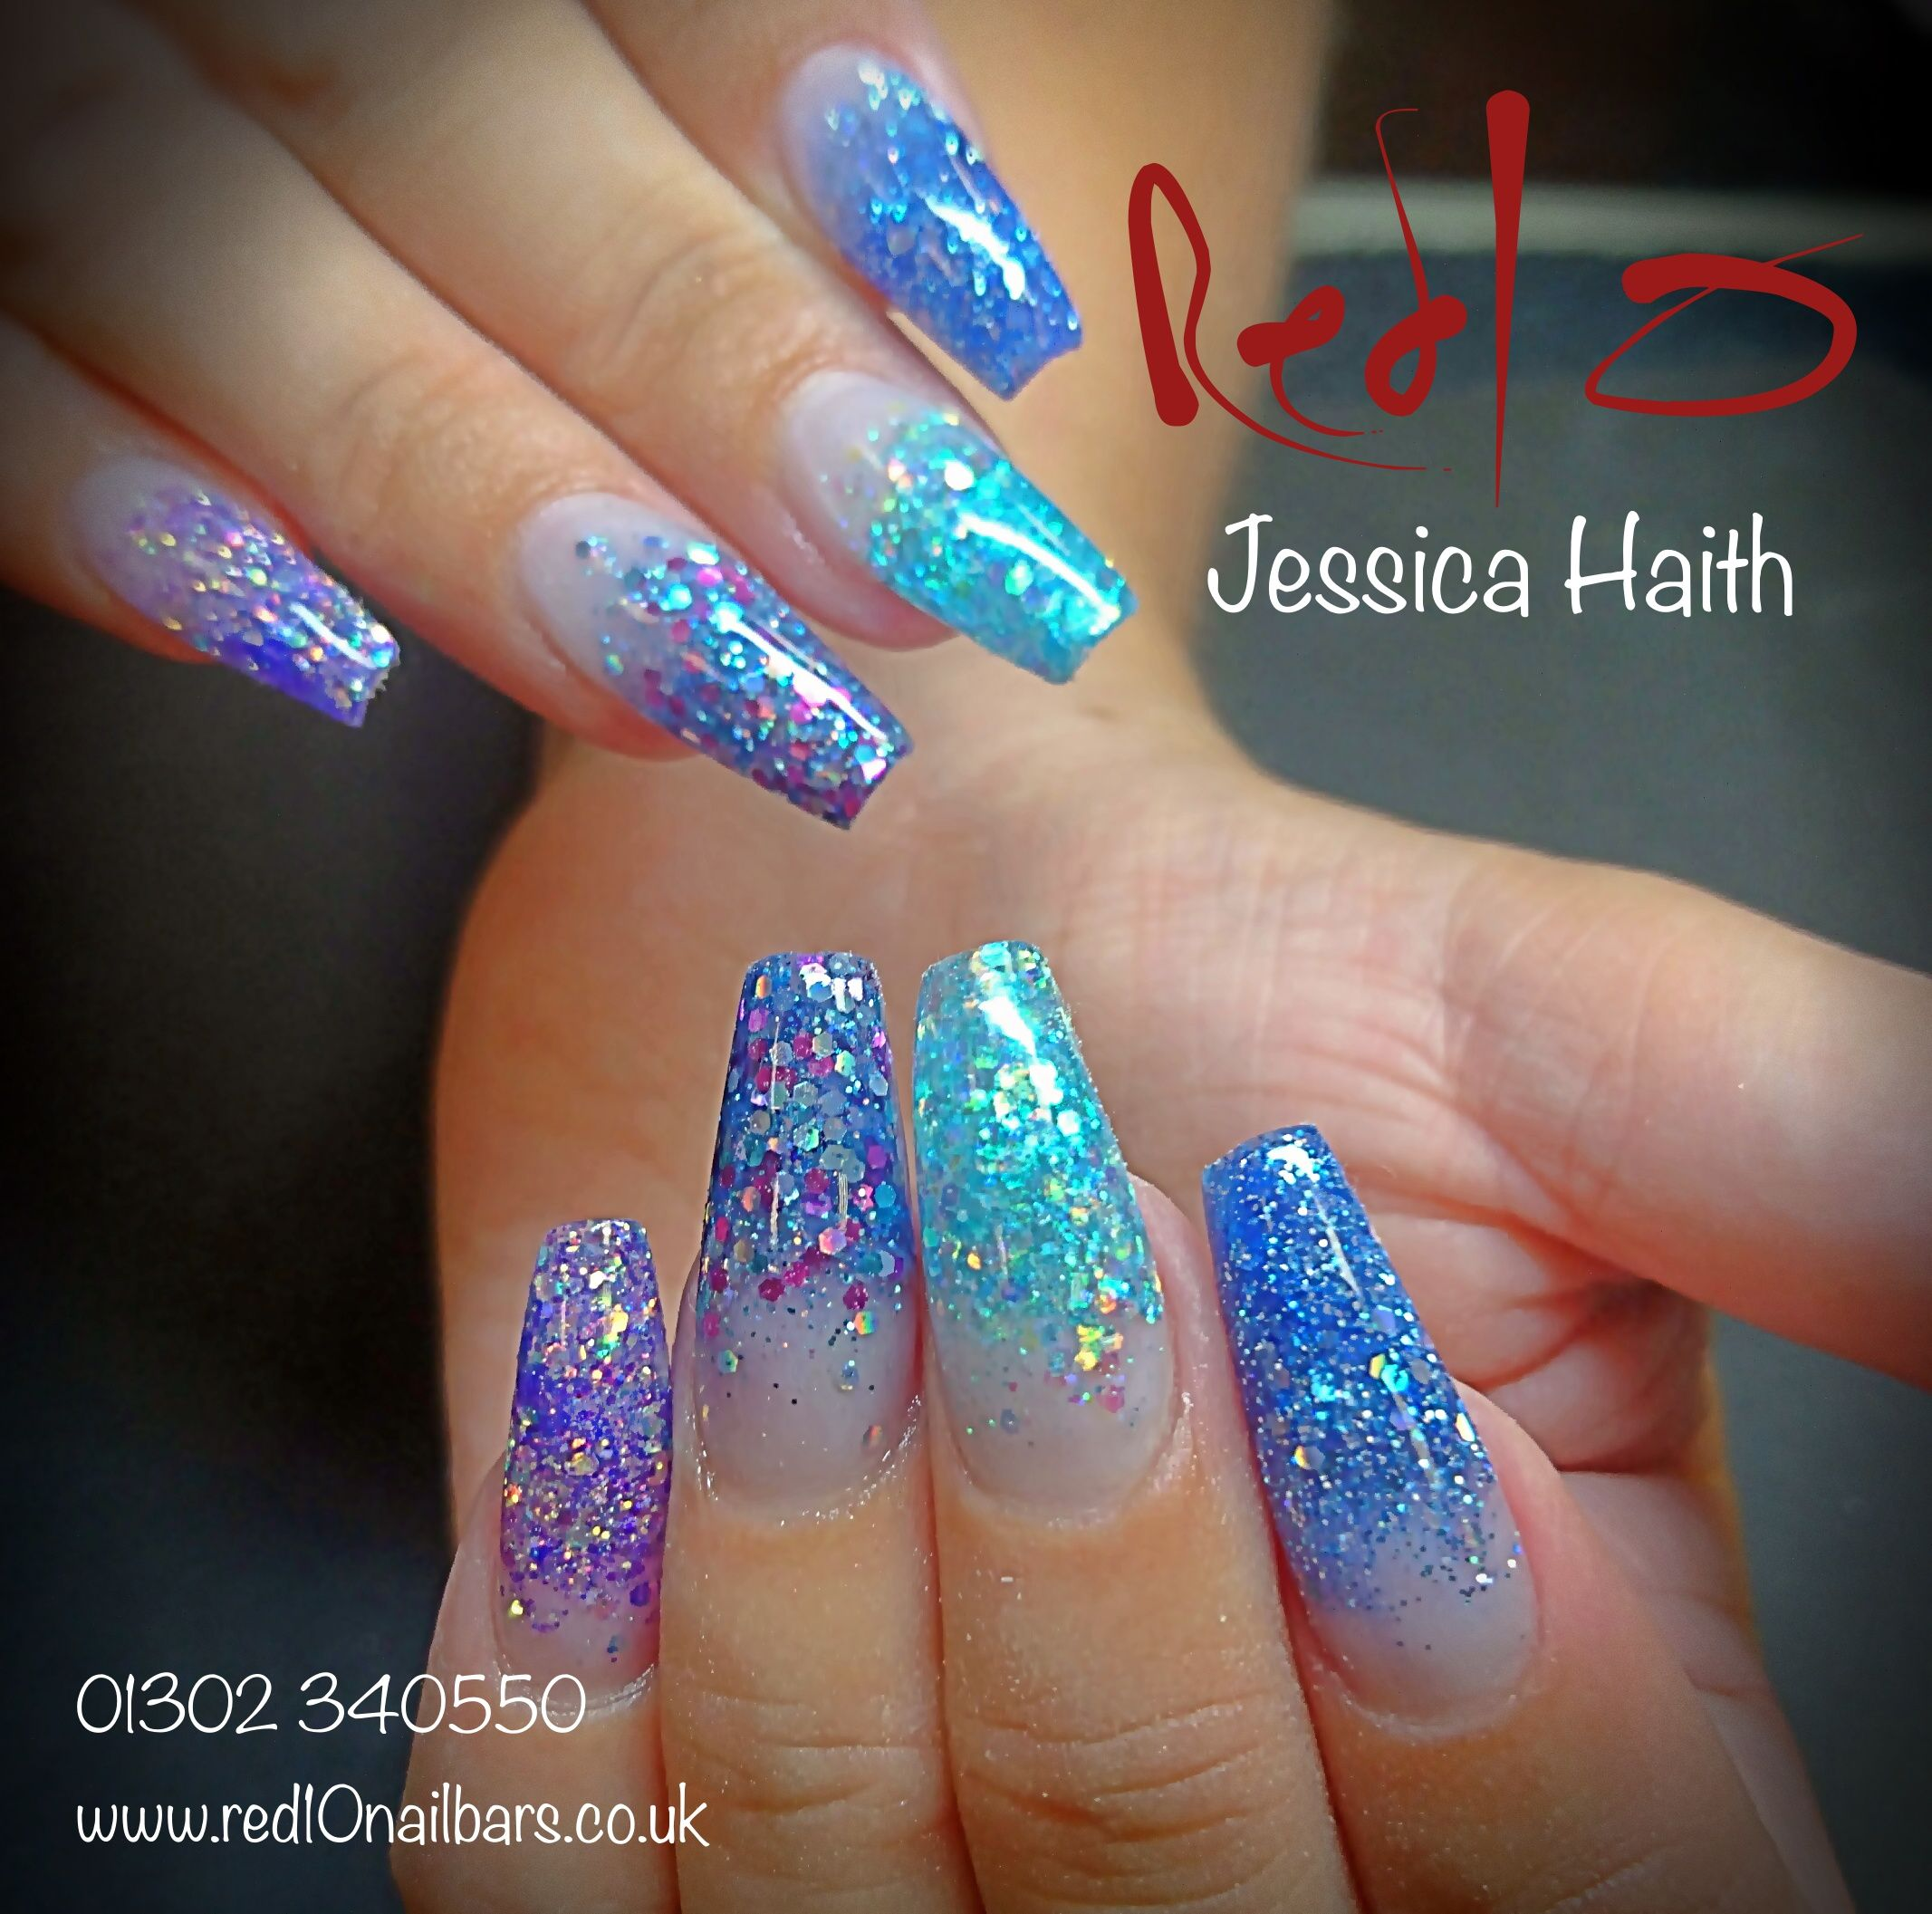 Acrylic Nails Glitter Nails Blue Nails Party Nails Prom Nails Nail Harmony Nail Harmony Blue Nails Prom Nails